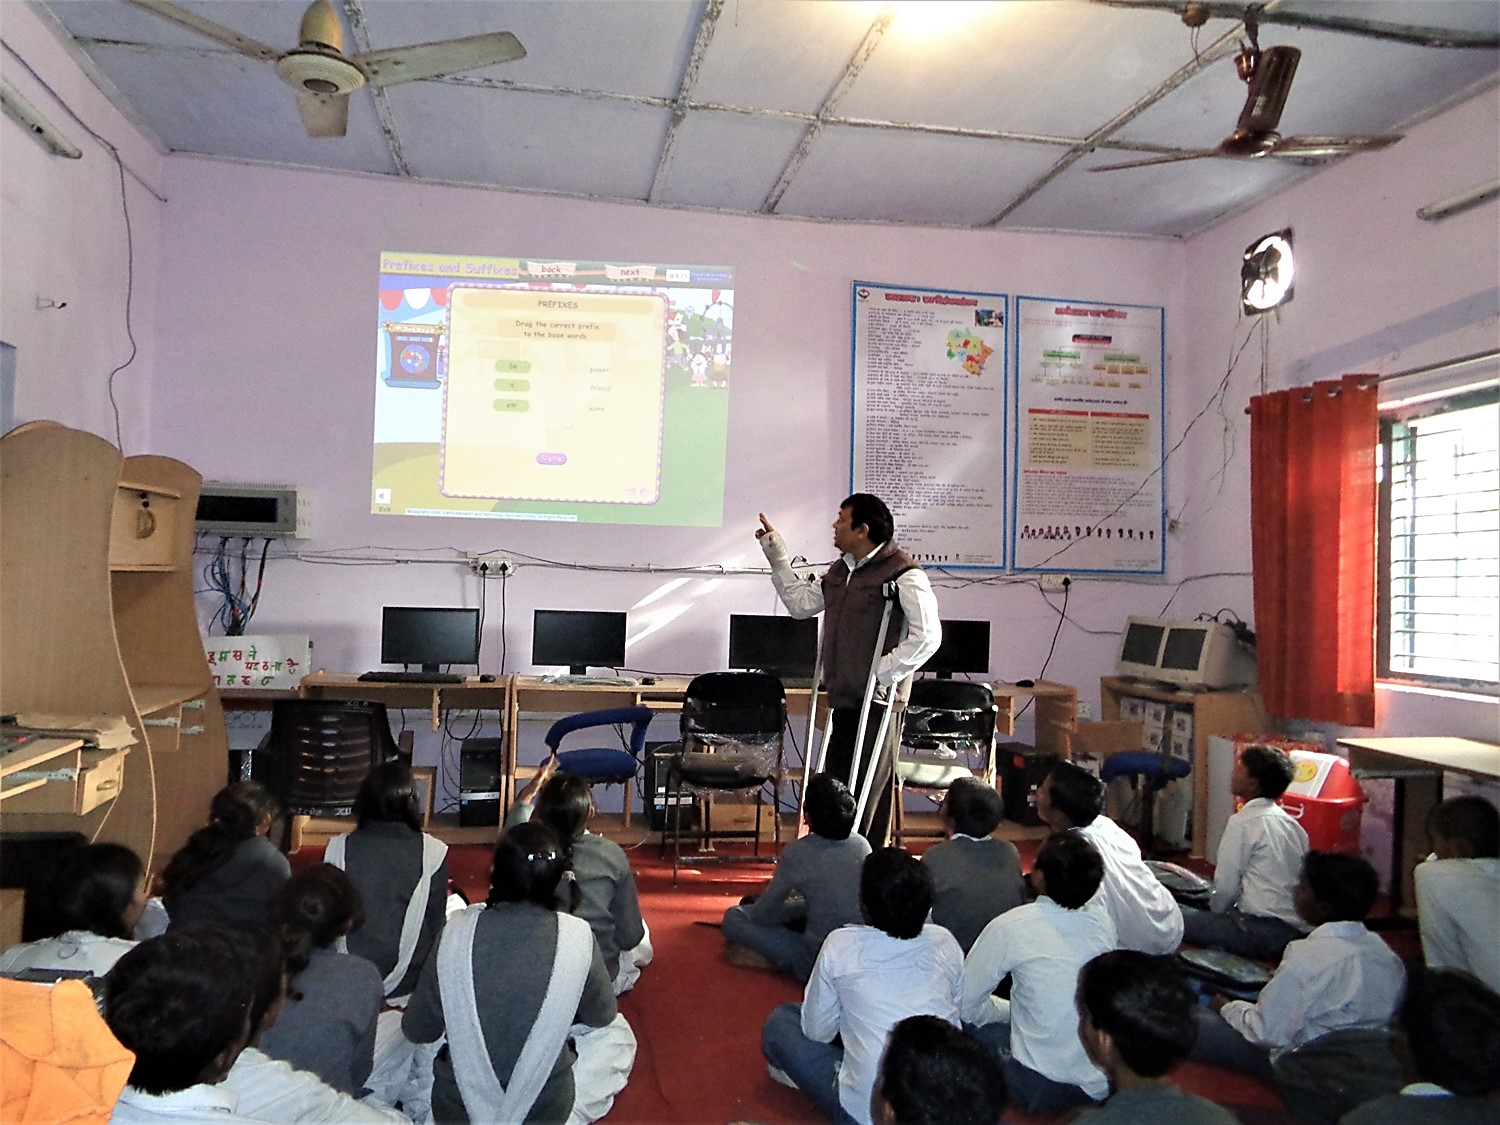 Negi using the school's projector during a class. (Photo credit: Pradeep Negi).